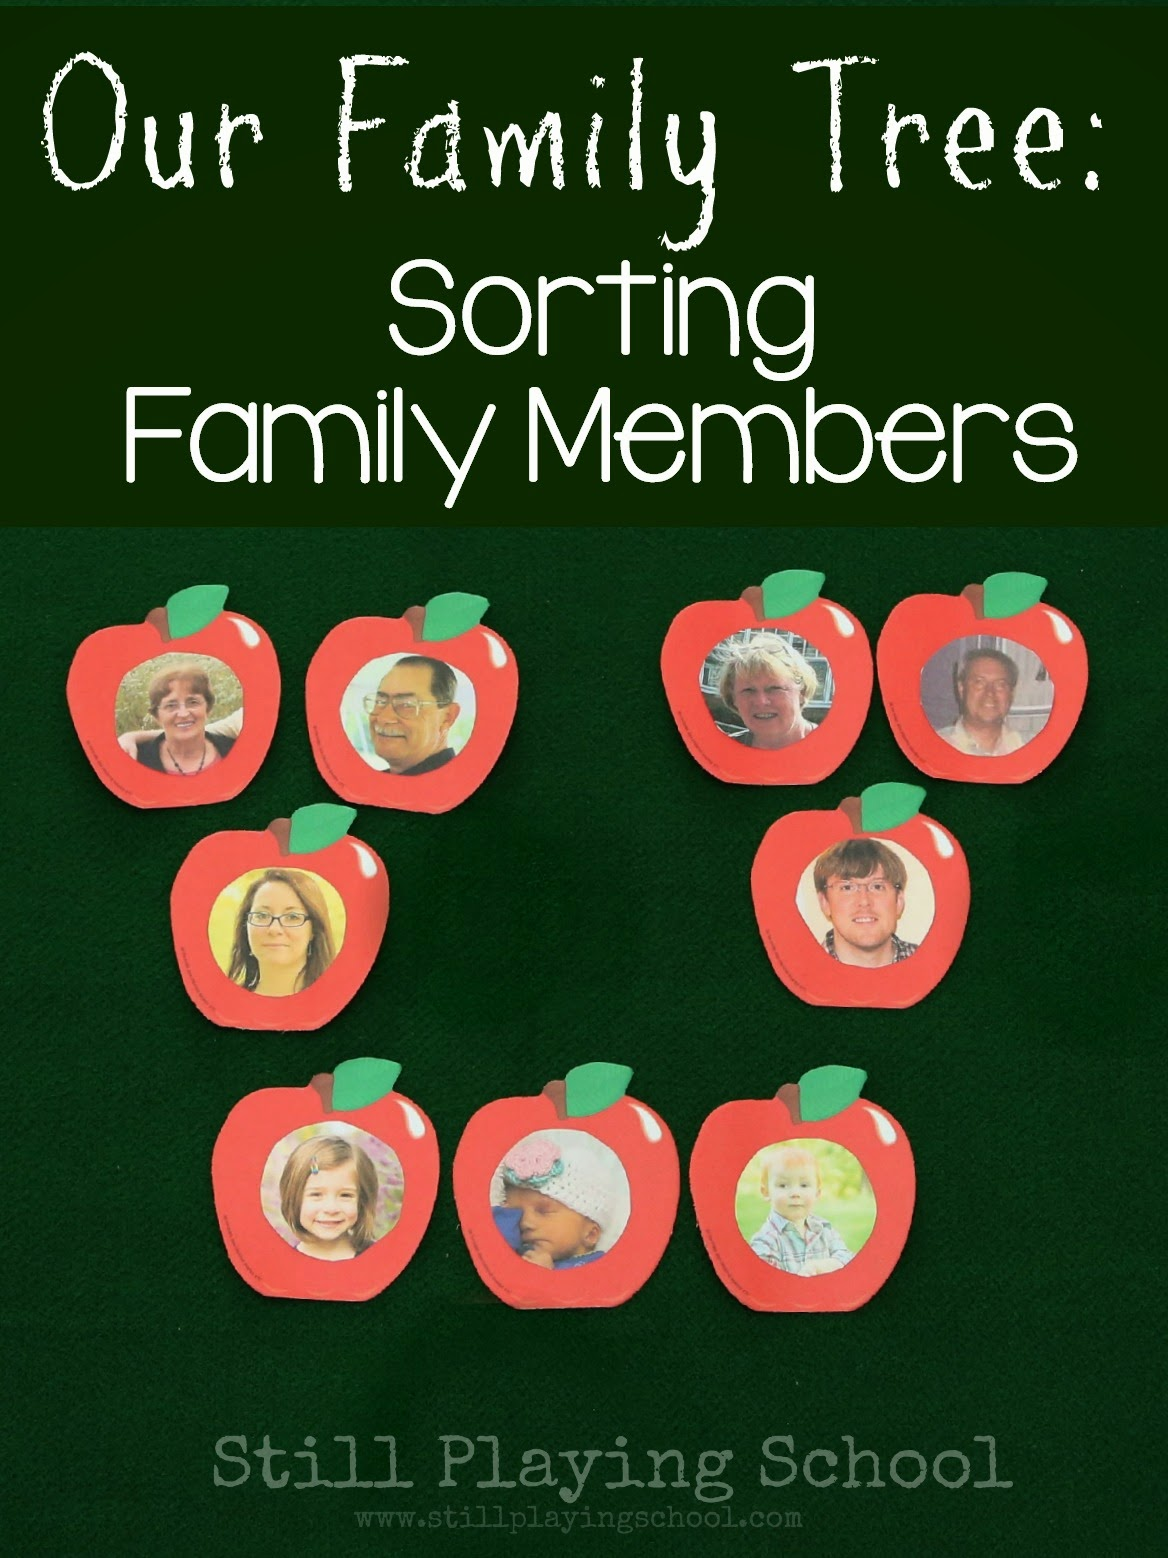 Our Family Tree Sorting Family Members